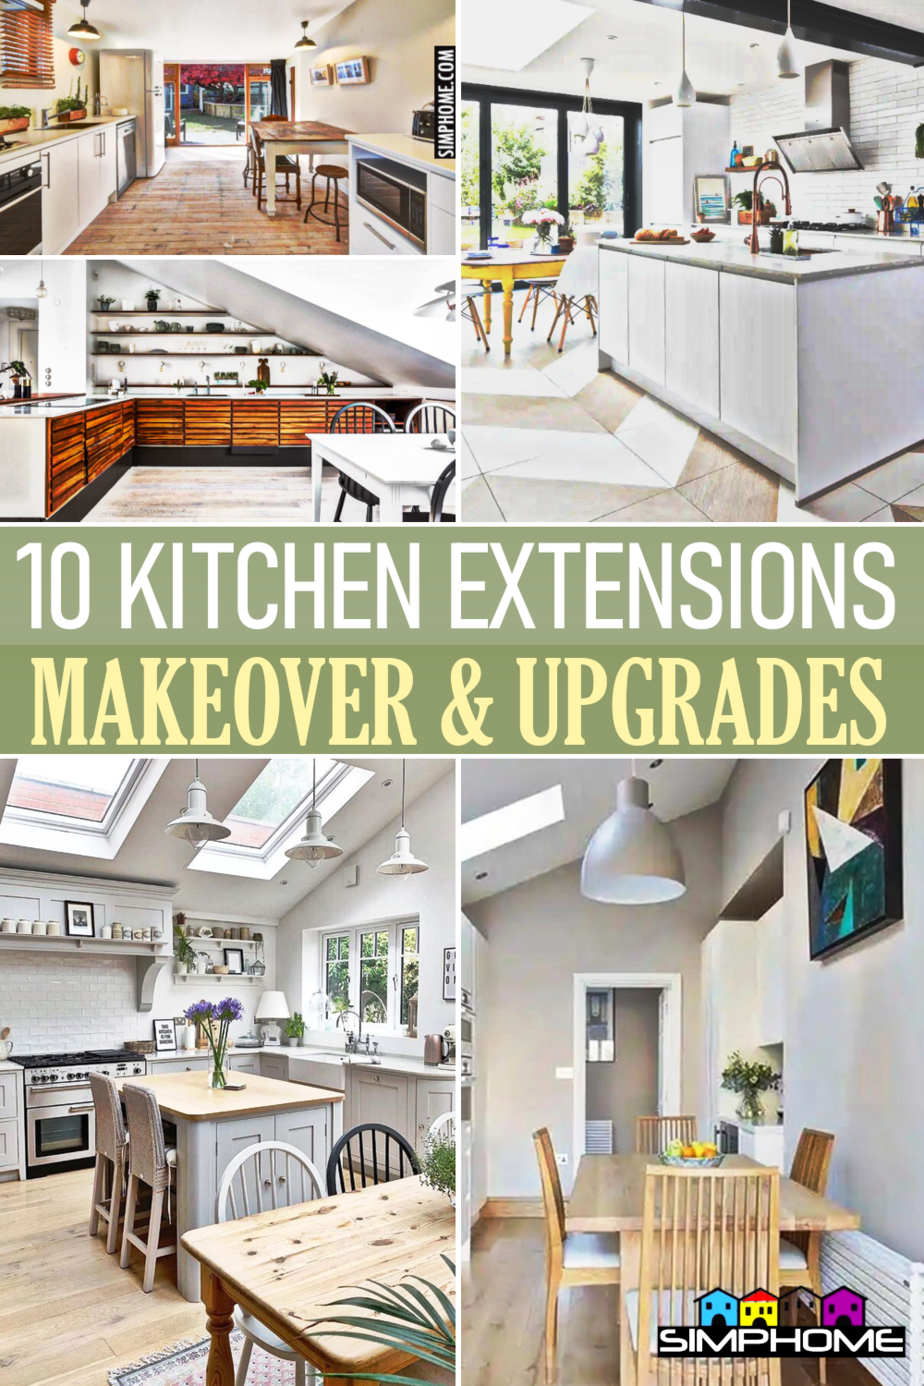 10 Kitchen Extension Ideas via Simphome.comFeatured